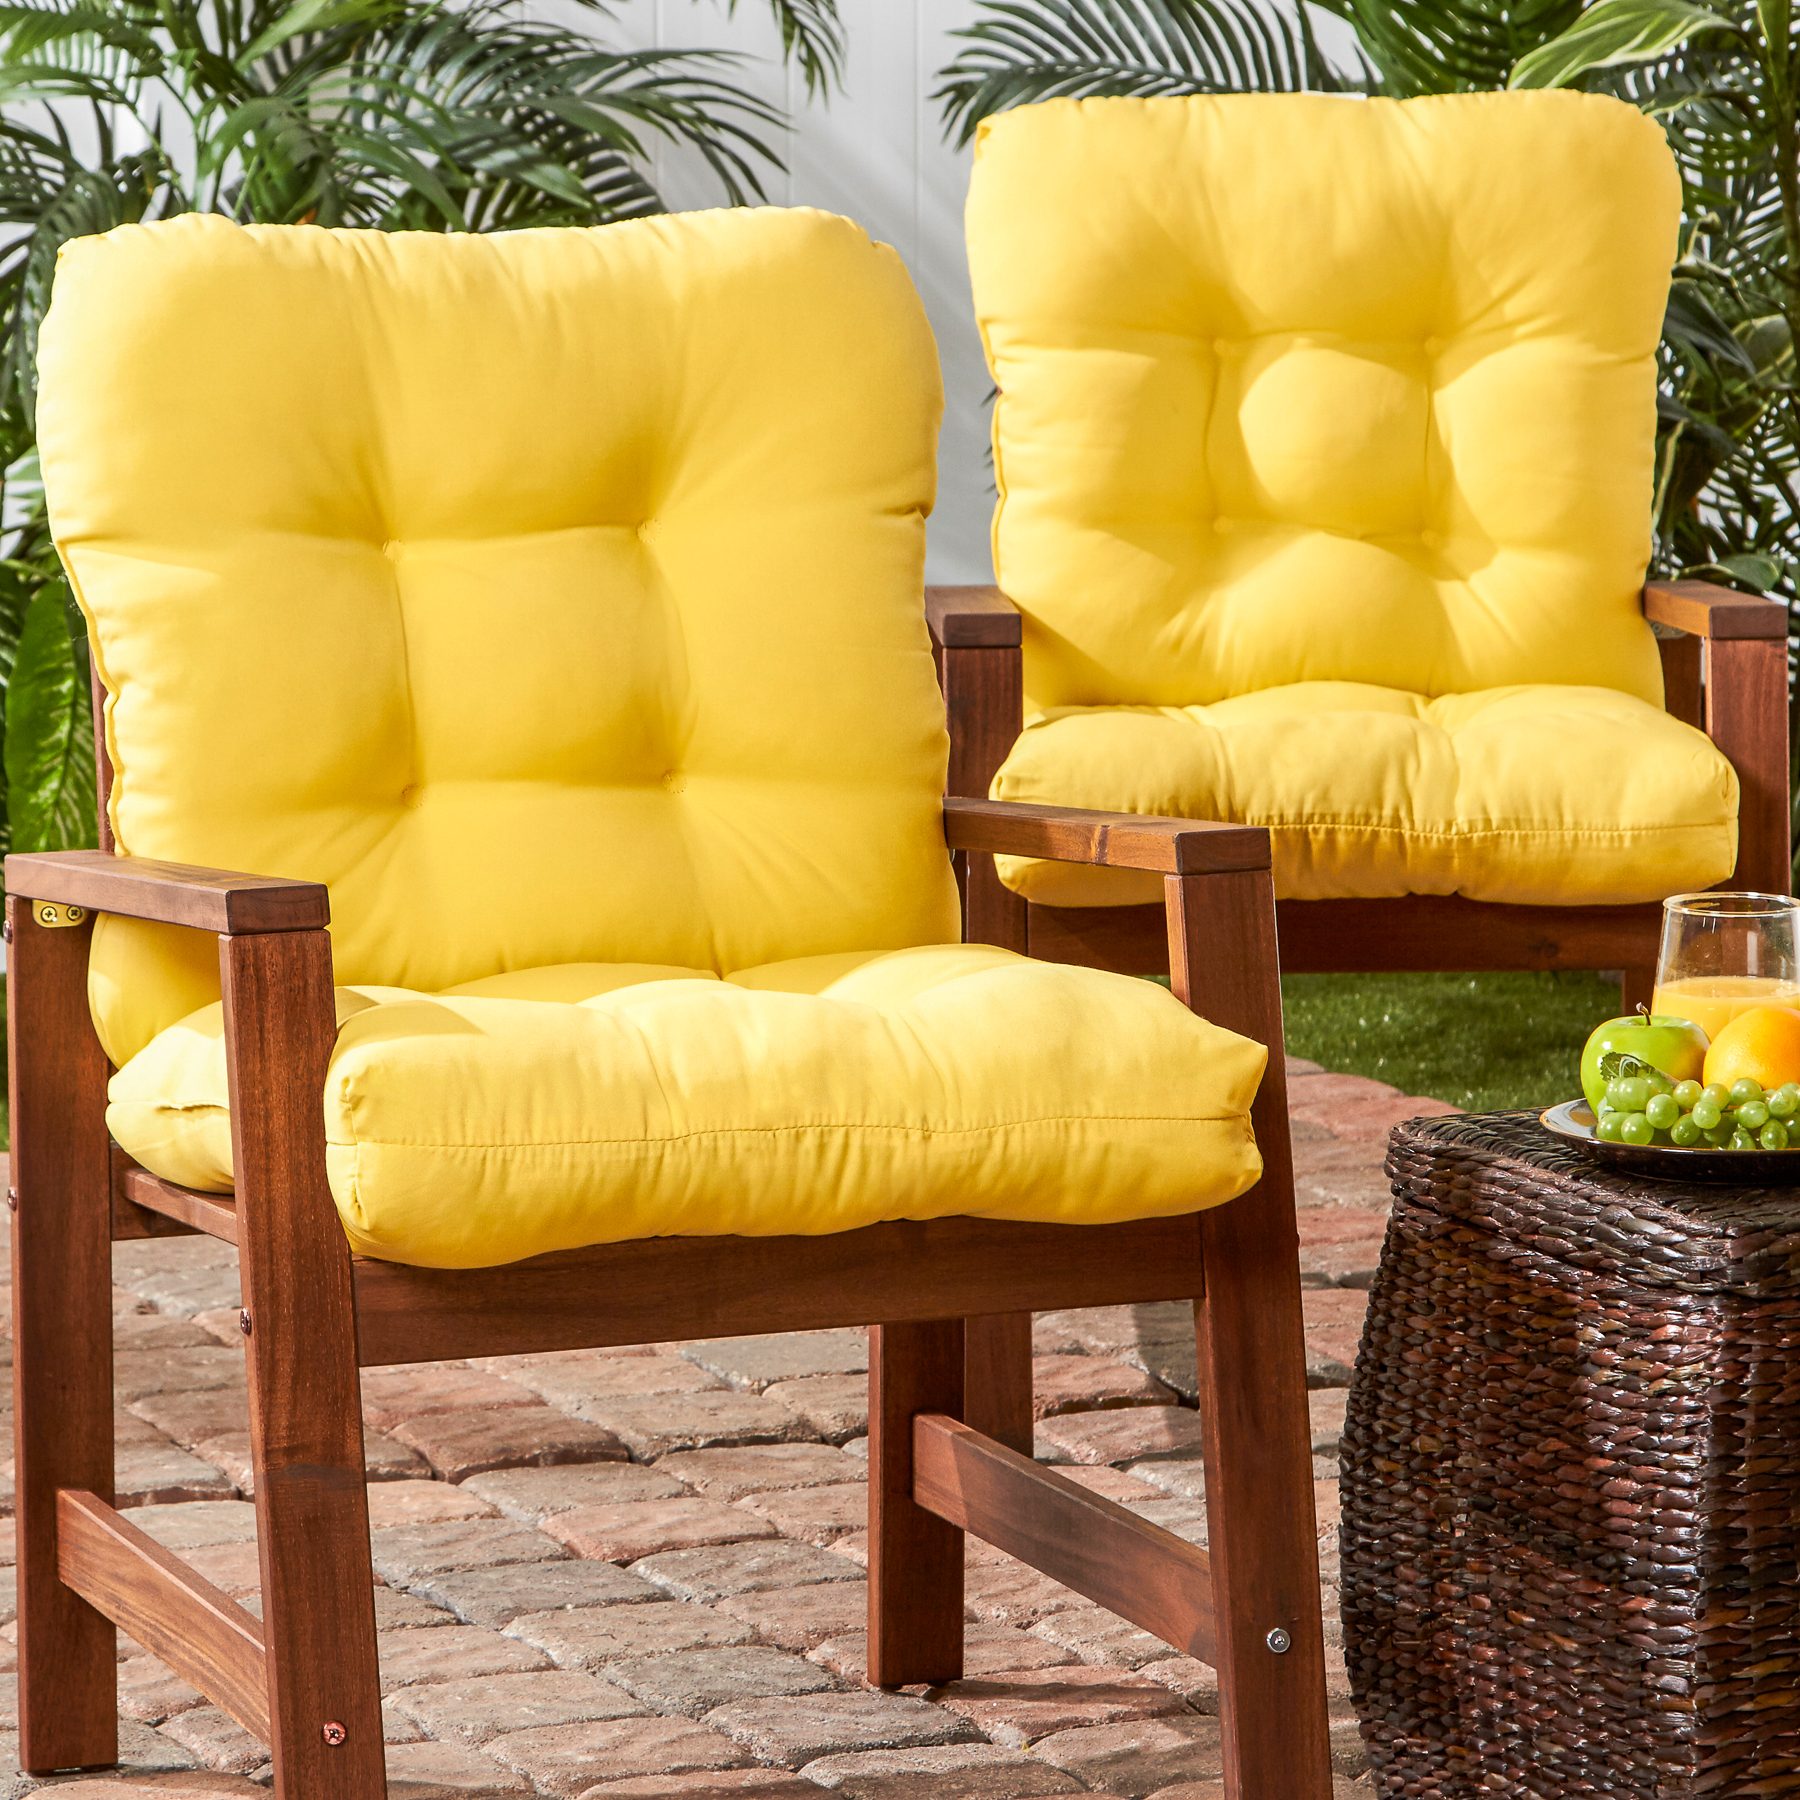 Greendale Home Fashions Set of Two Outdoor SeatBack Chair Cushions Sunbeam Yellow  Outdoor